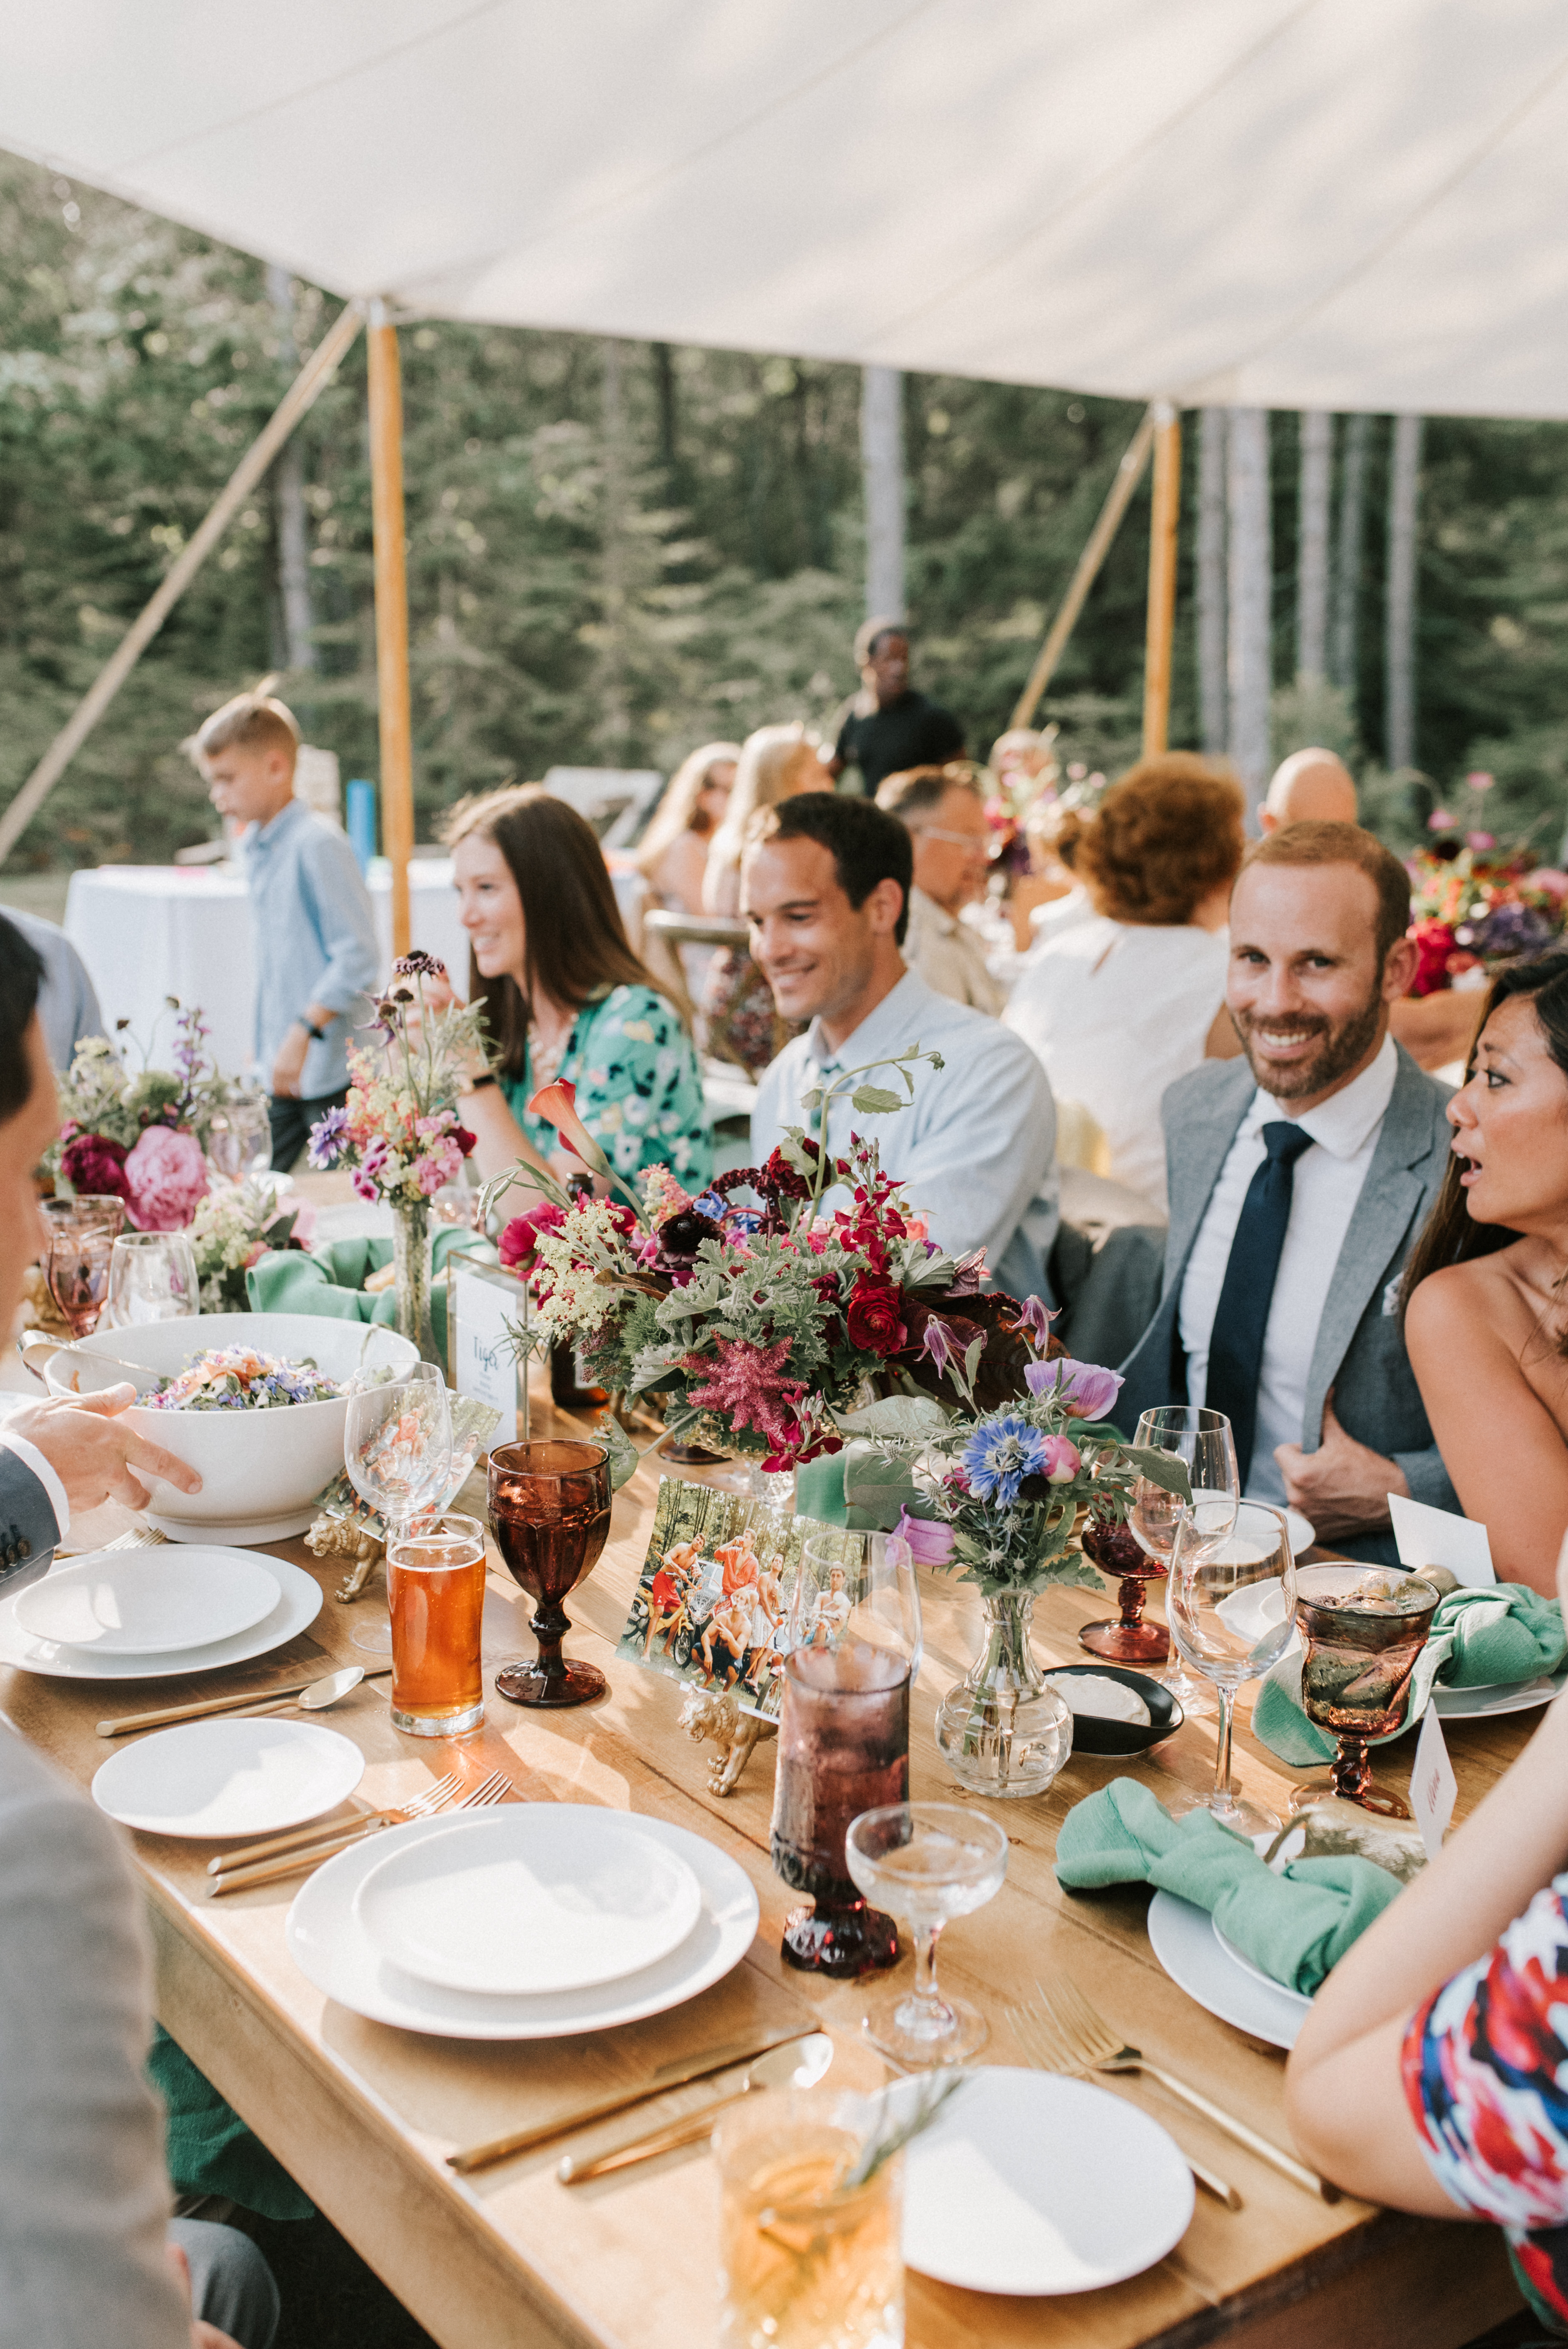 Reception at Hidden Pond Wedding in Kennebunkport, Maine